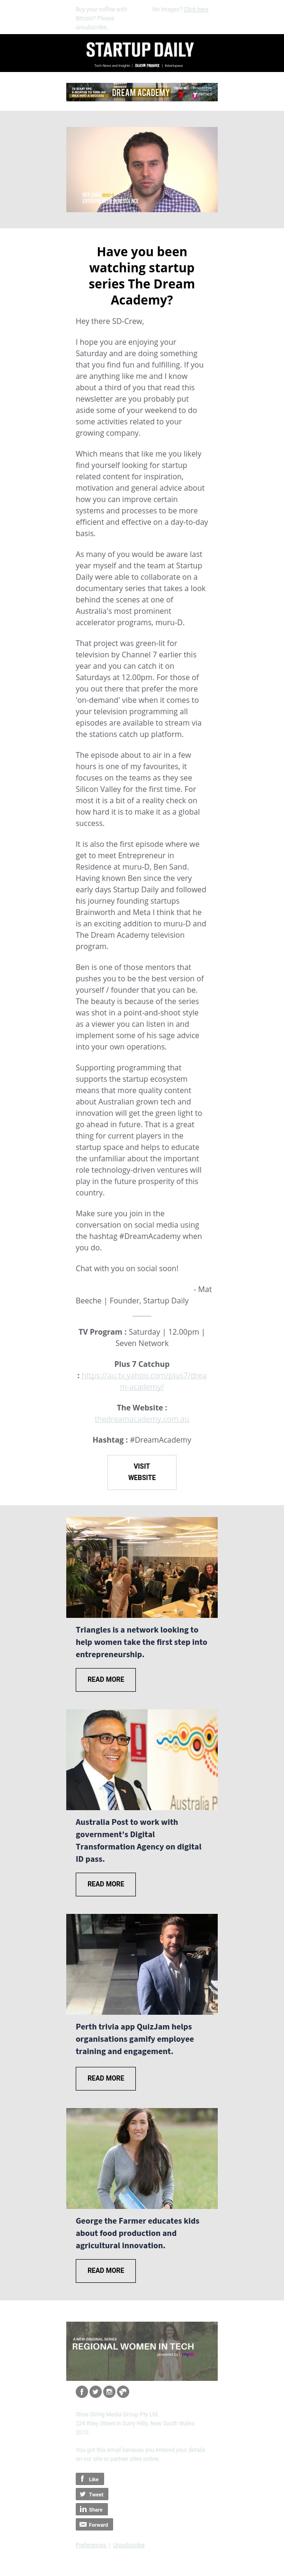 Have you been watching startup focused tv series The Dream Academy?